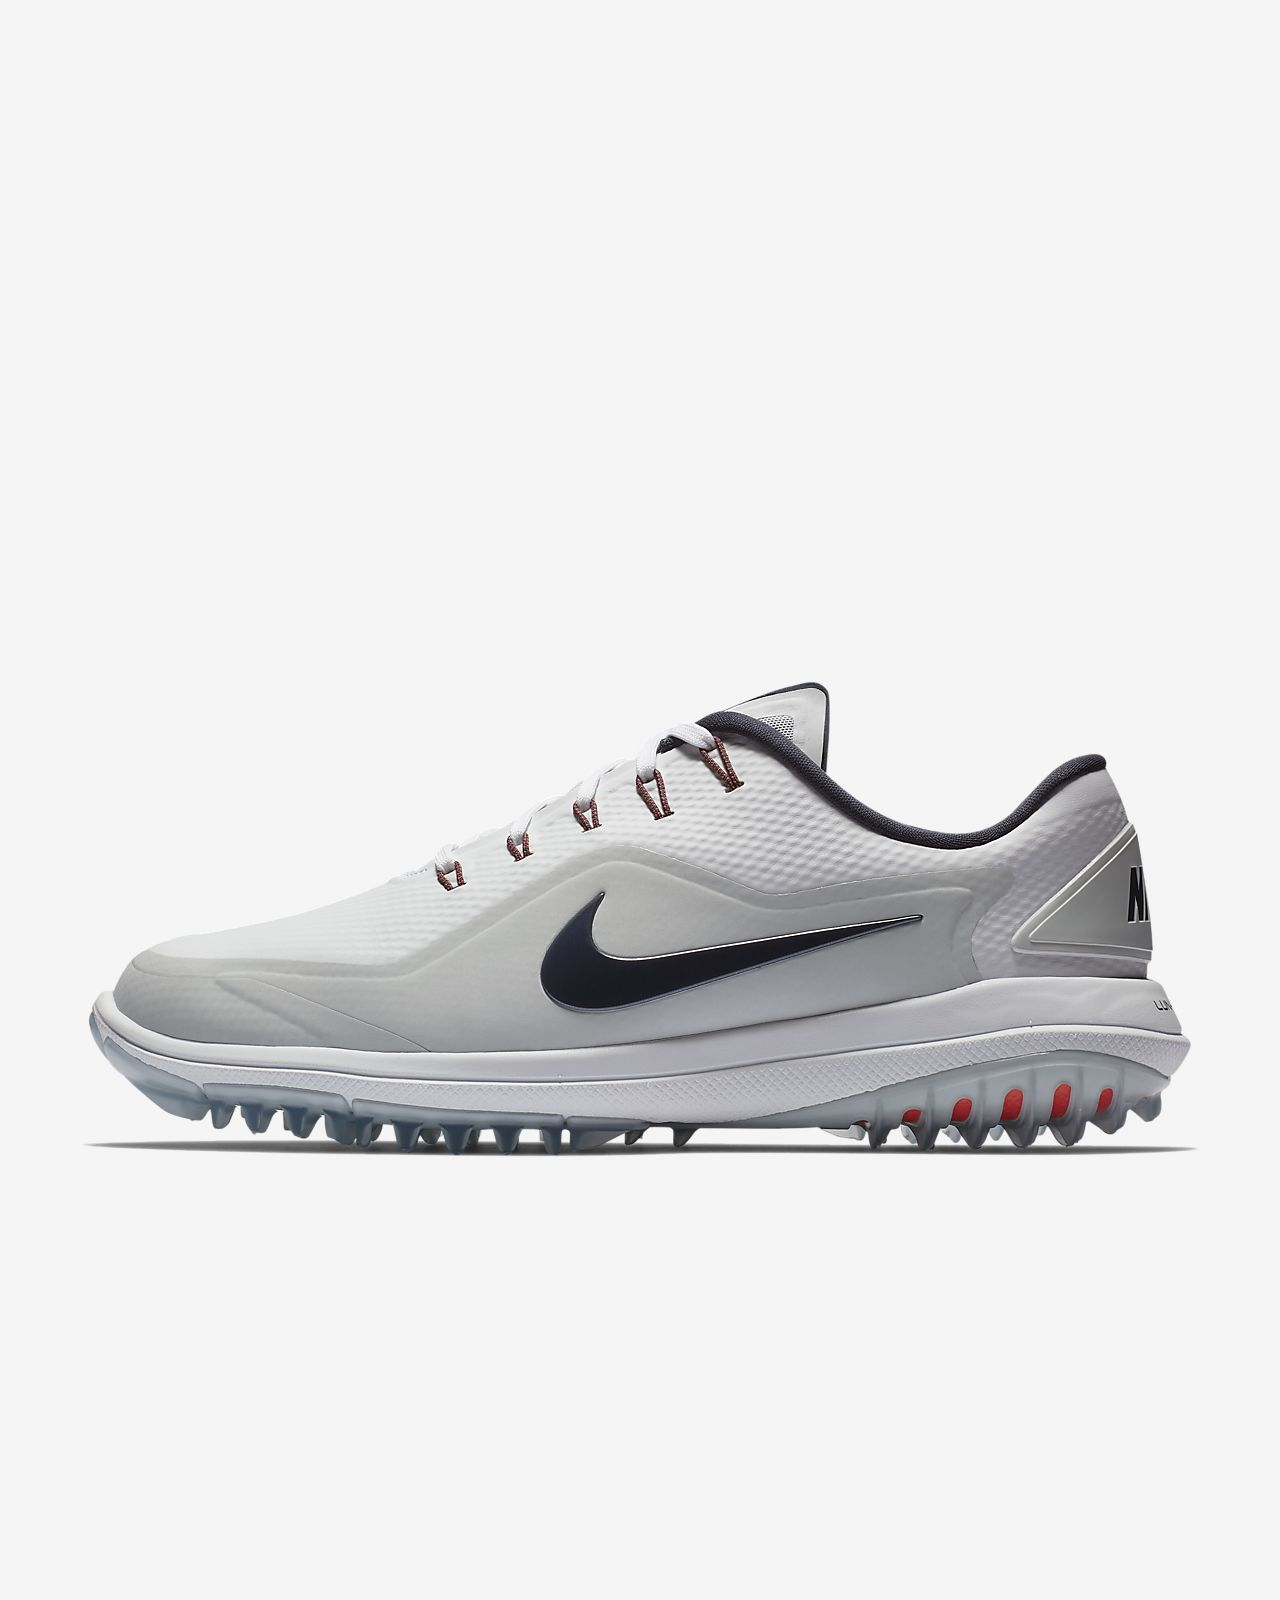 ... Nike Lunar Control Vapor 2 Men's Golf Shoe